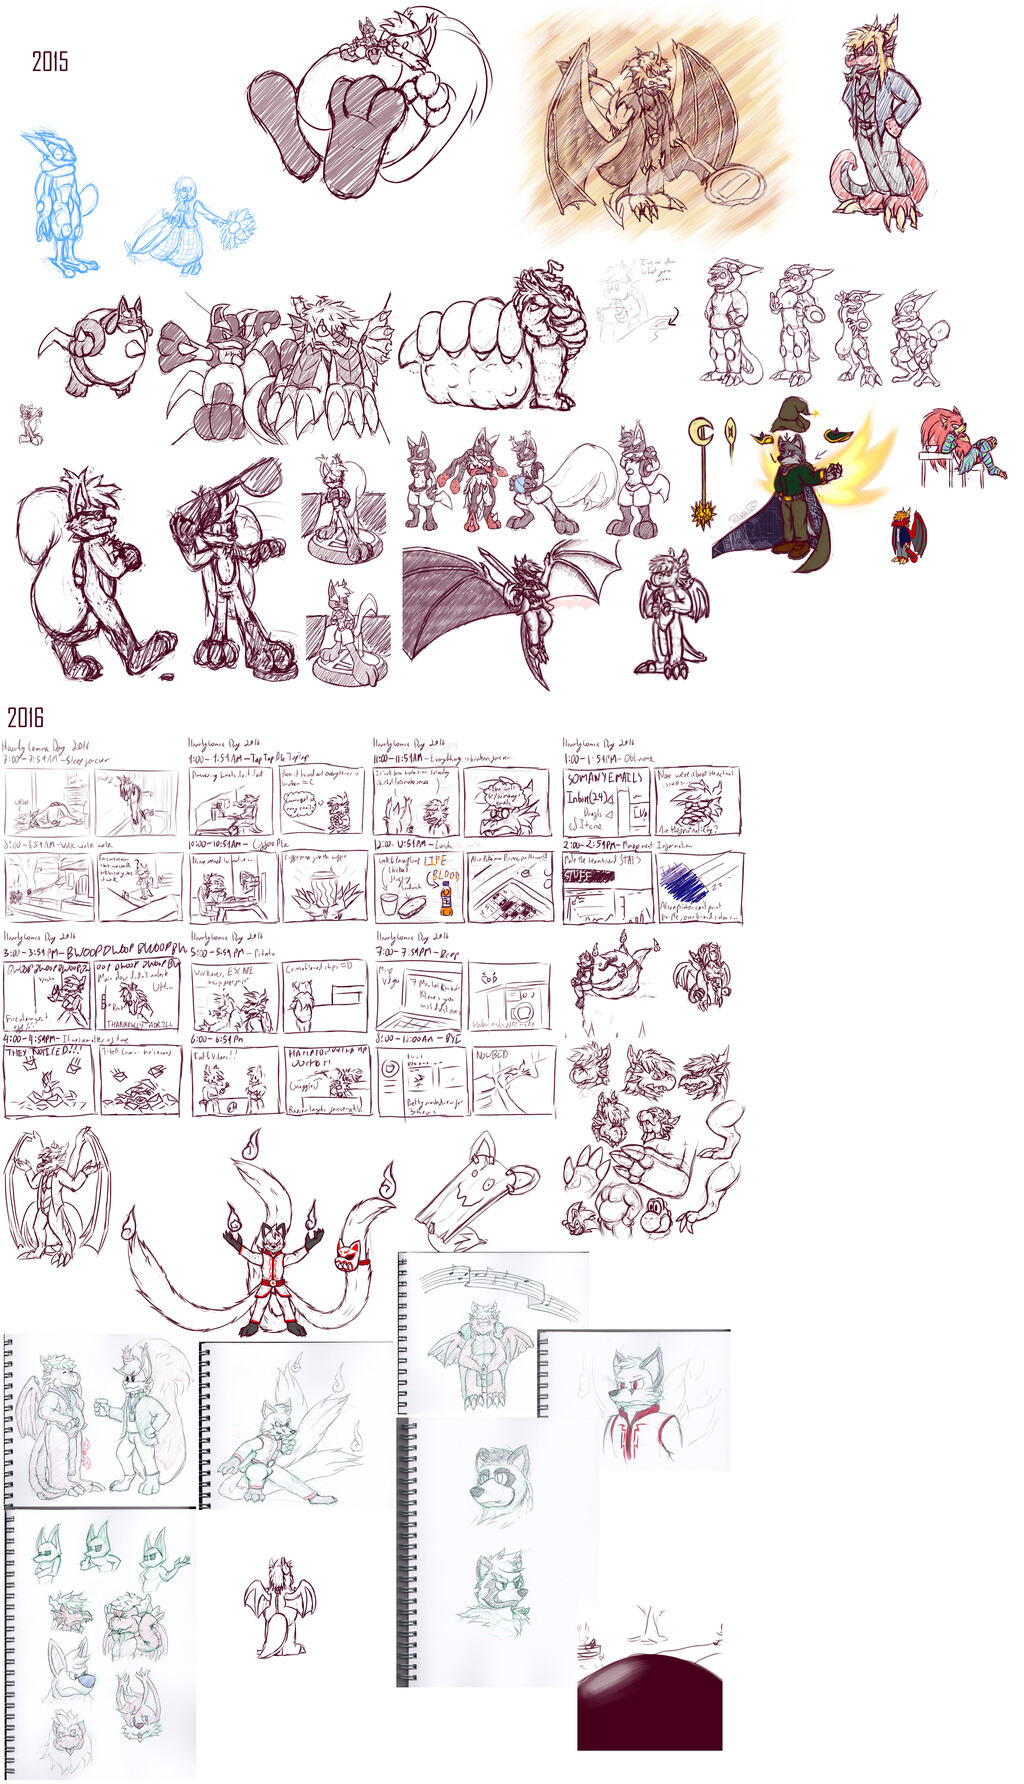 2015 and 2016 Doodle Wrapup